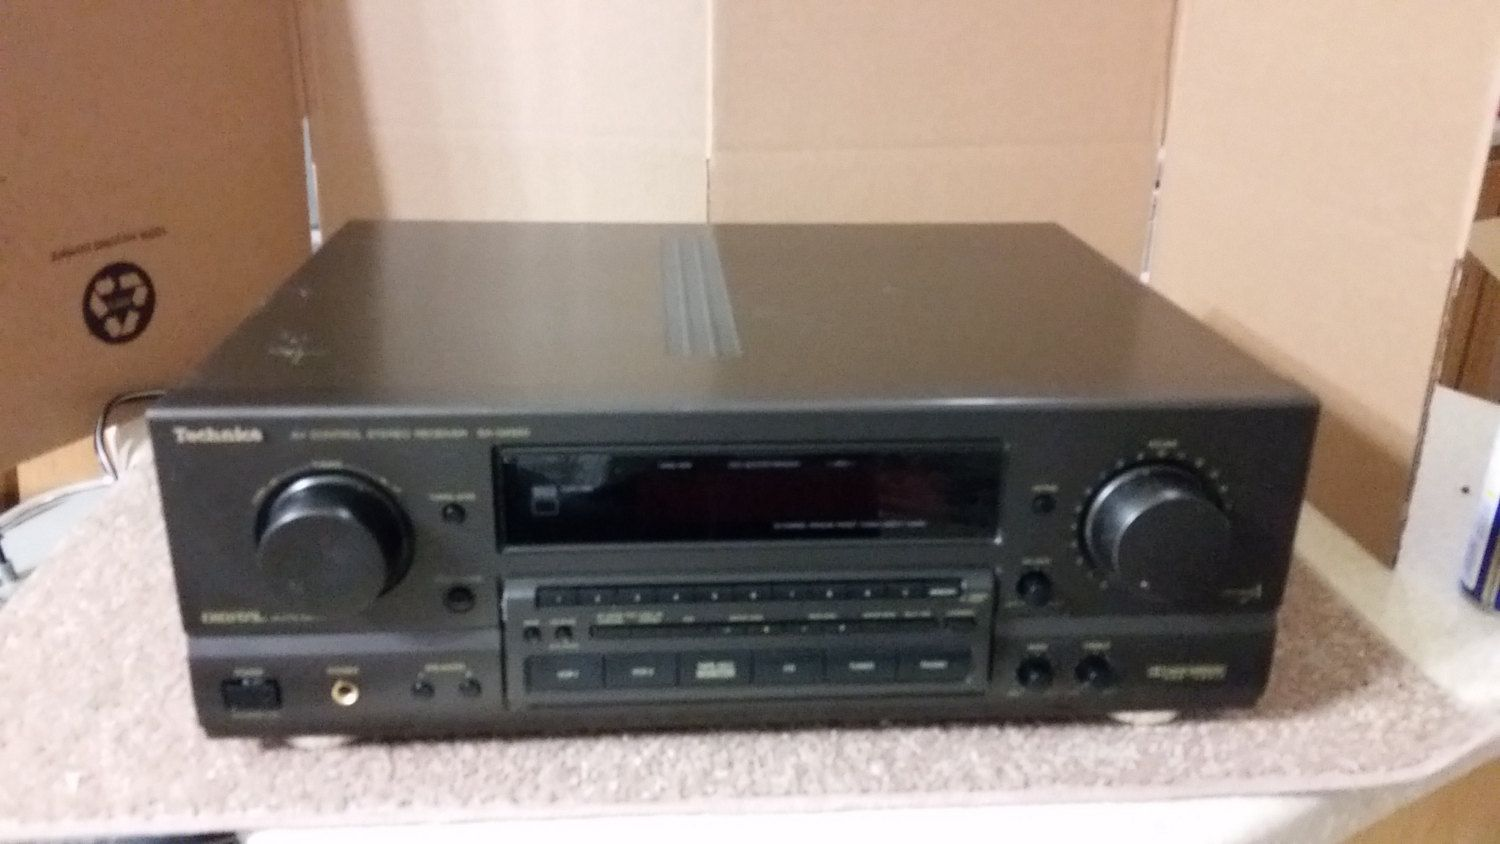 Technics SA-GX550 AM/FM Receiver . Very nice vintage 1990-1994.